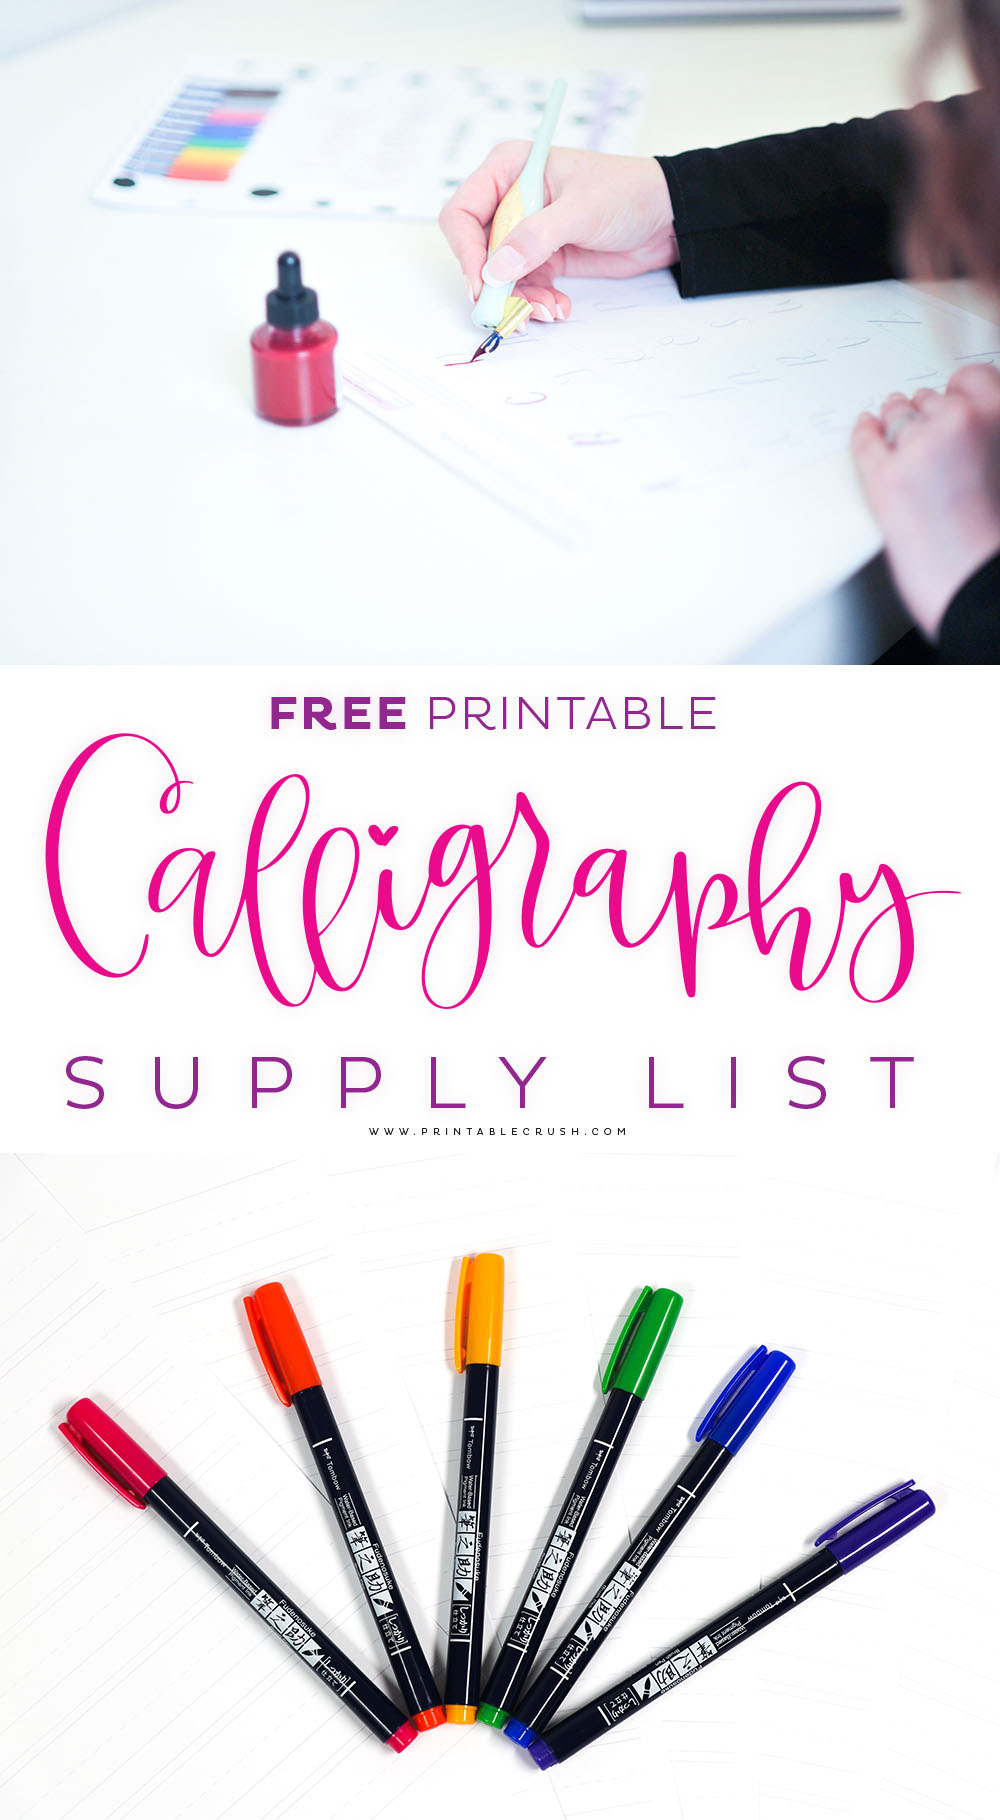 Download this FREE Casual Calligraphy Supply List to get the BEST supplies for creating calligraphy artwork!